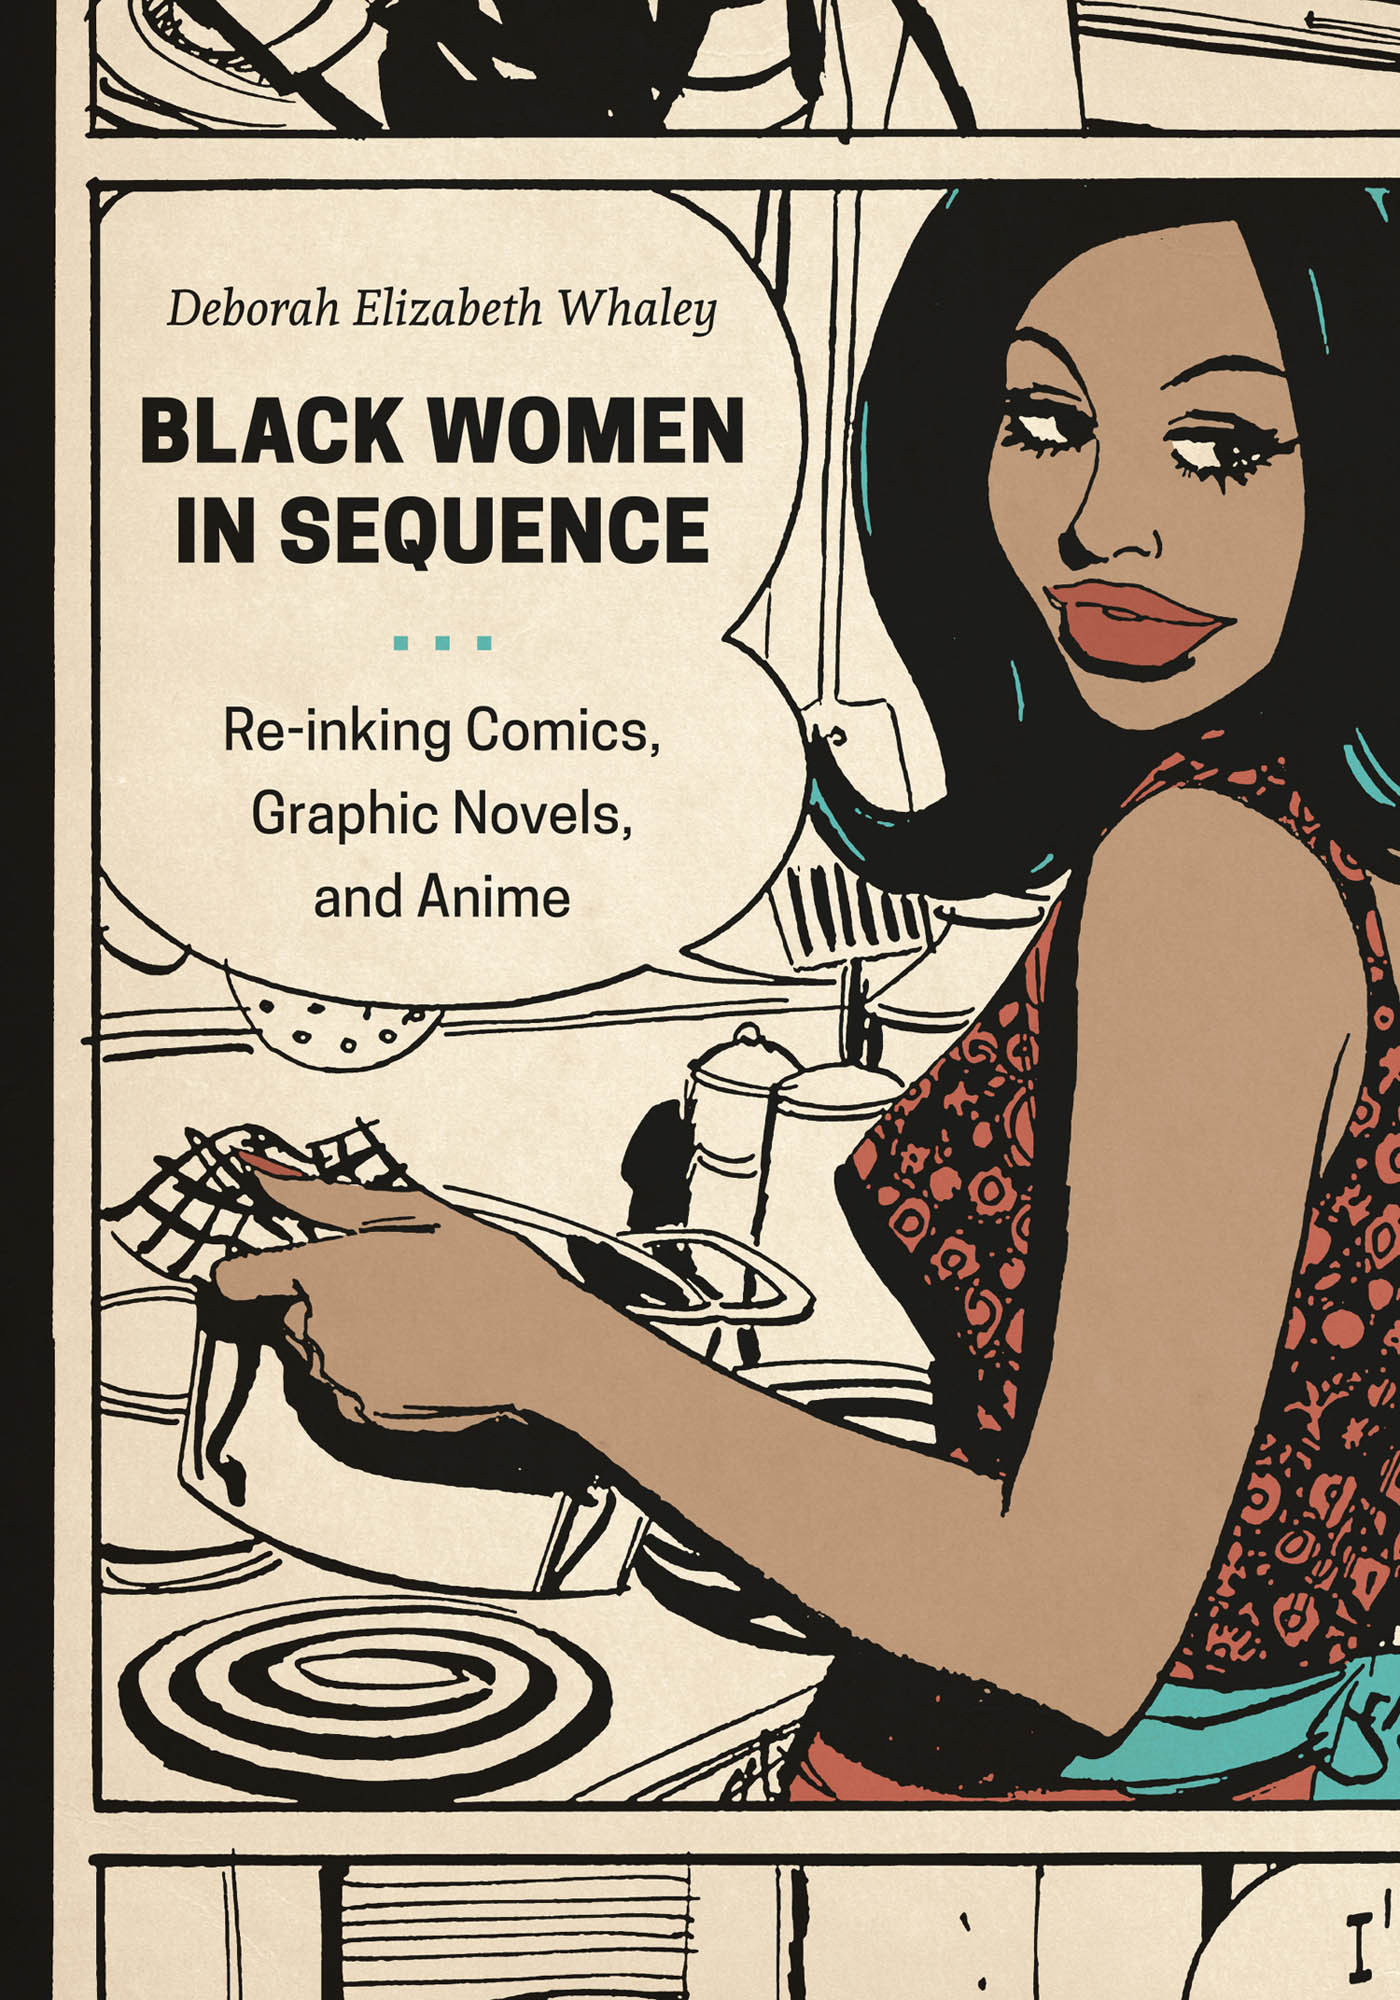 Black Women in Sequence, eBook cover